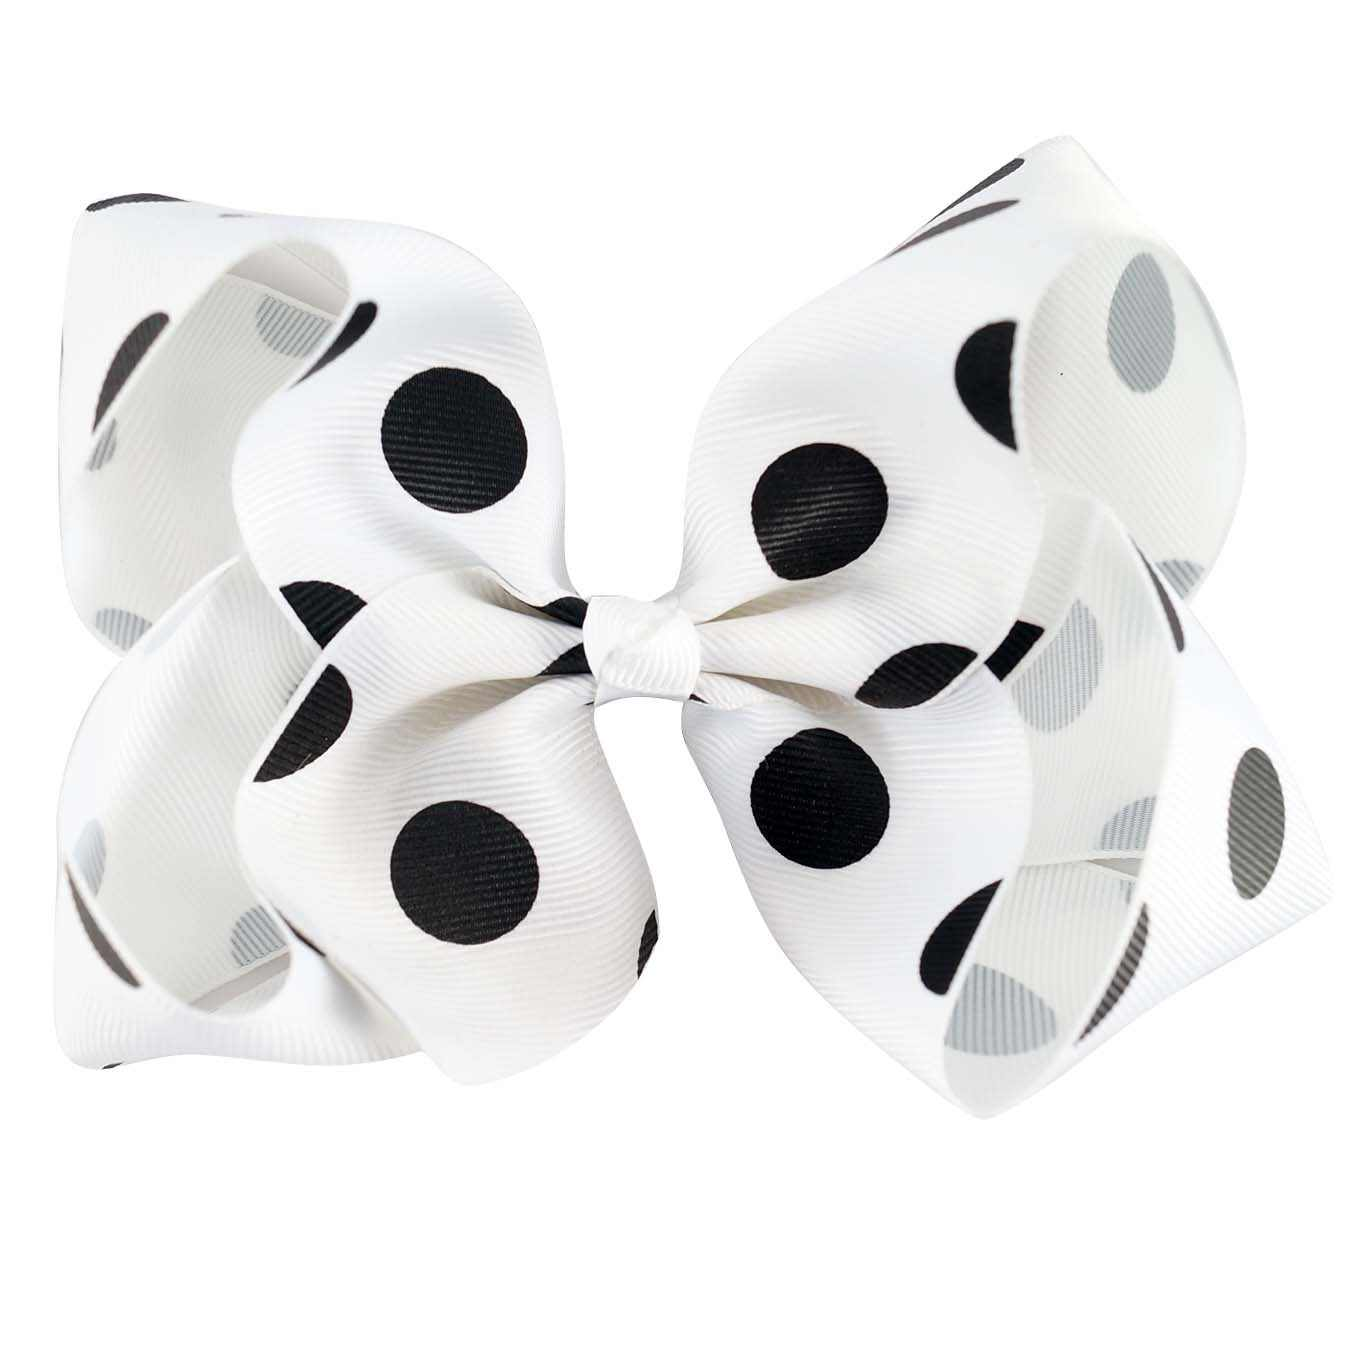 5 Inch Cute White Polka Dots Hair Bows With Clips Solid Printed Ribbon Bows Handmade Hairgrips For Girls Kids Hair Accessories